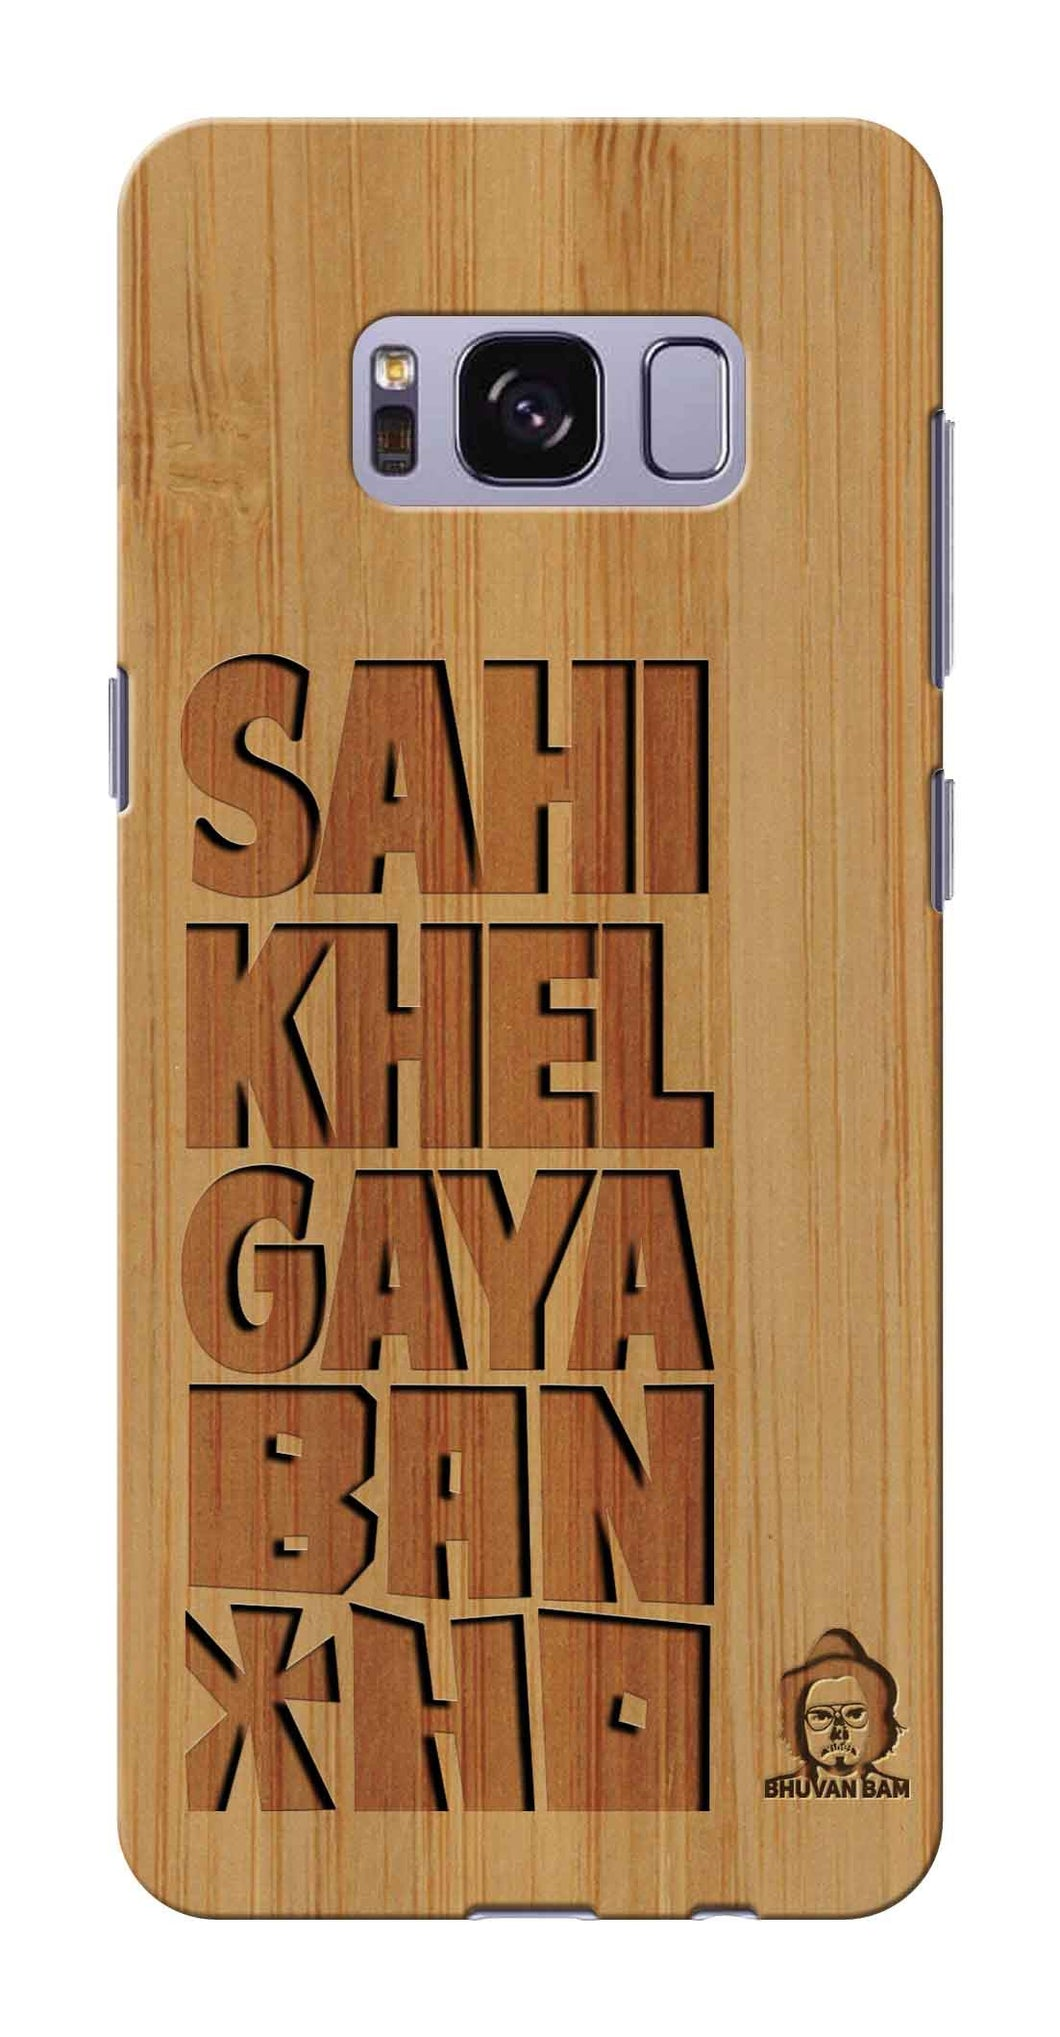 Bamboo Wood Bancho Edition for S8 plus